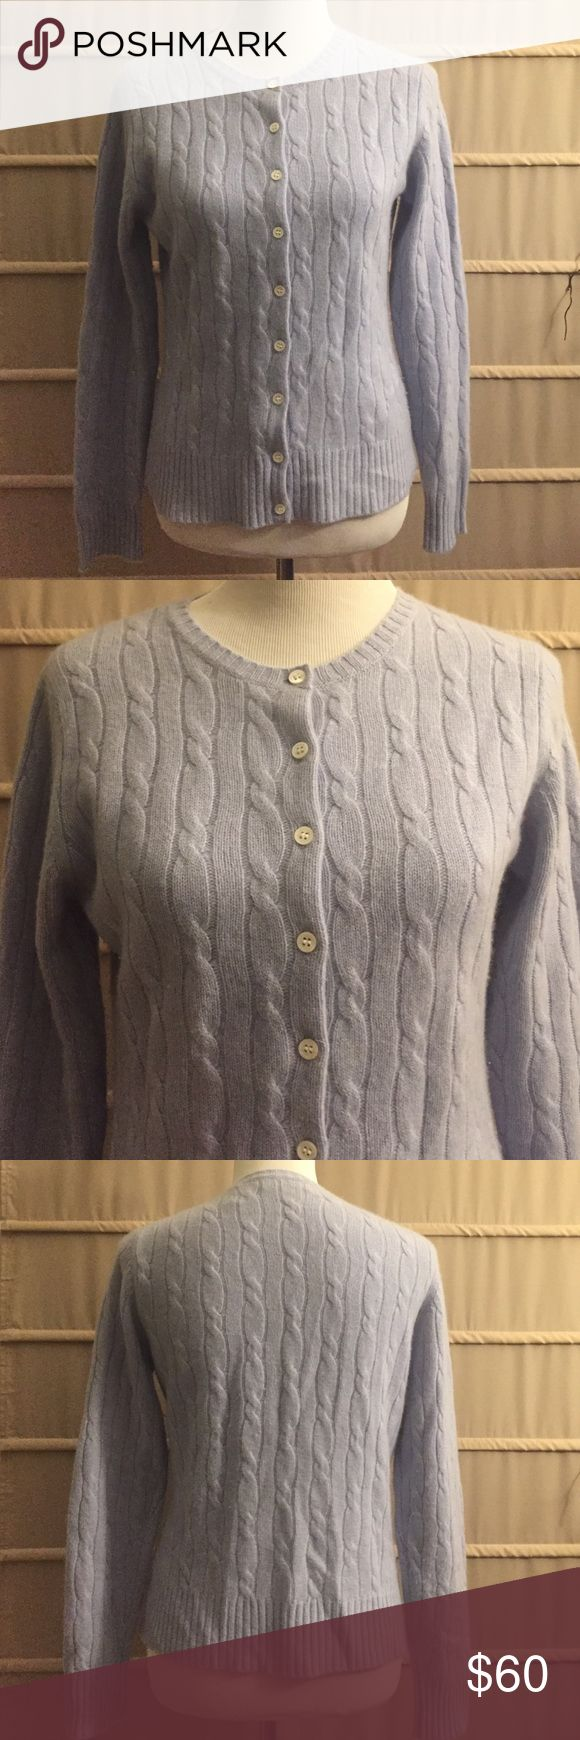 Lord & Taylor blue 2 ply cashmere sweater medium Oh so soft and luxurious! Lord & Taylor Sweaters Cardigans